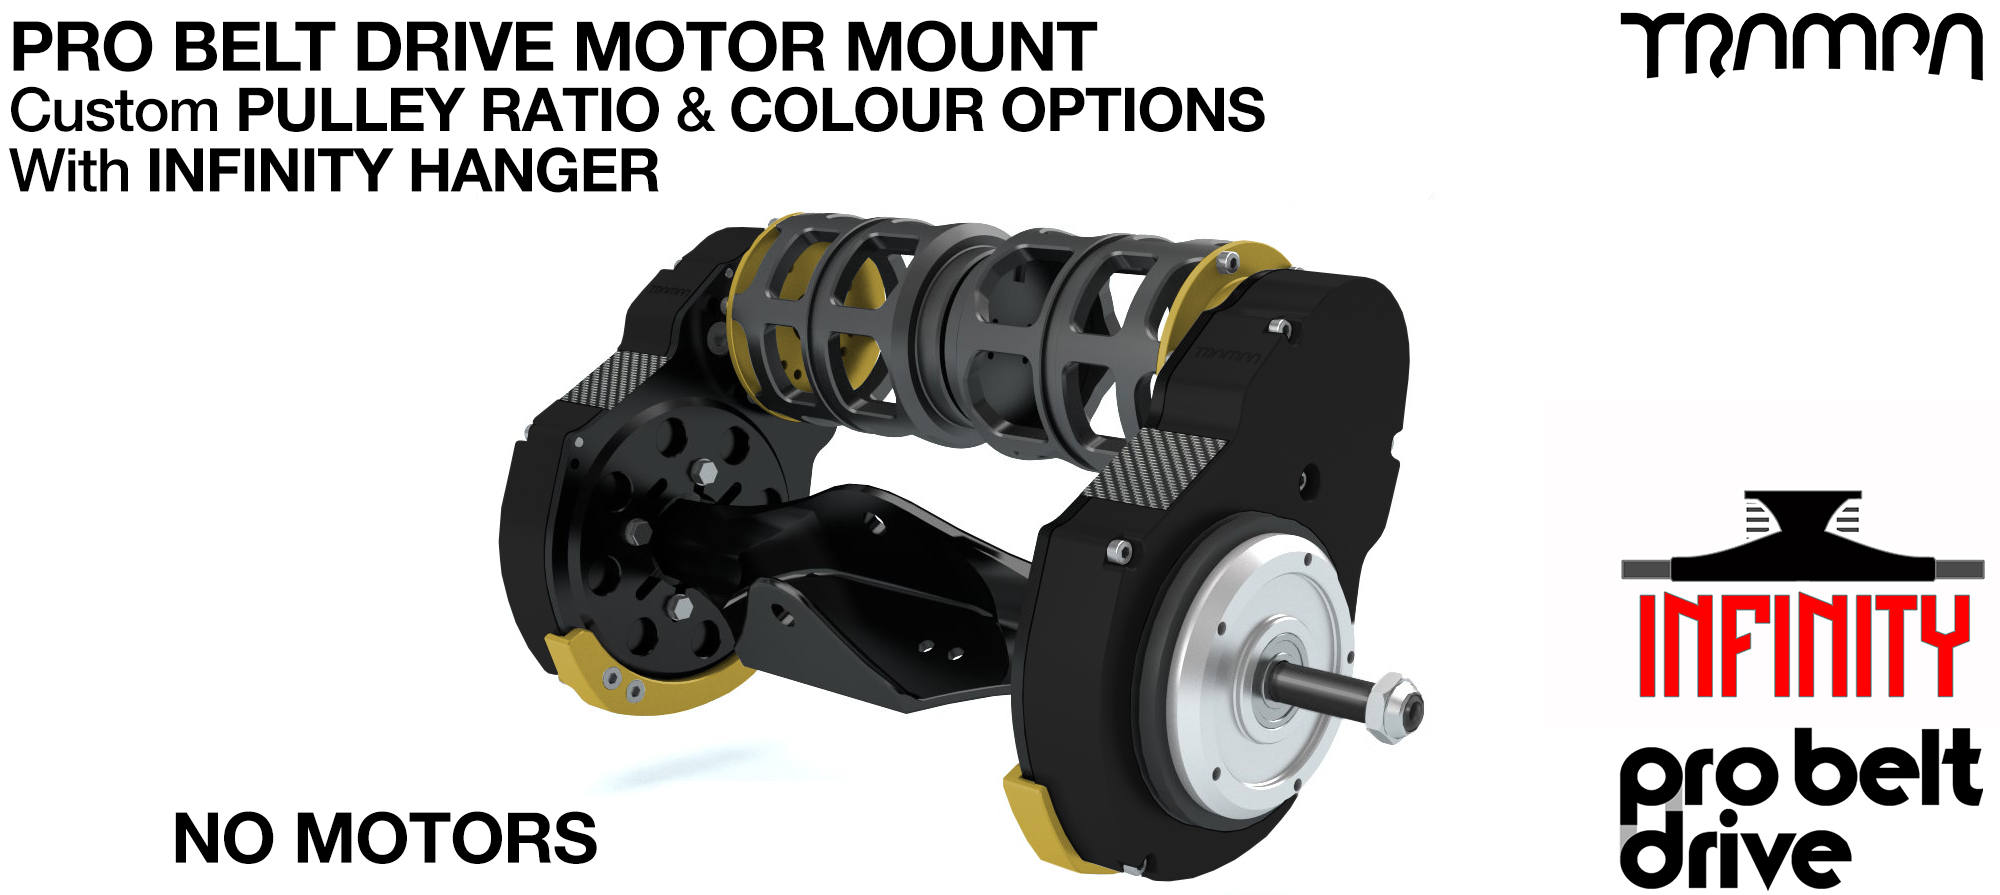 Mountainboard PRO Belt Drive TWIN Motor Mounts, Motors & Precision INFINITY Hanger